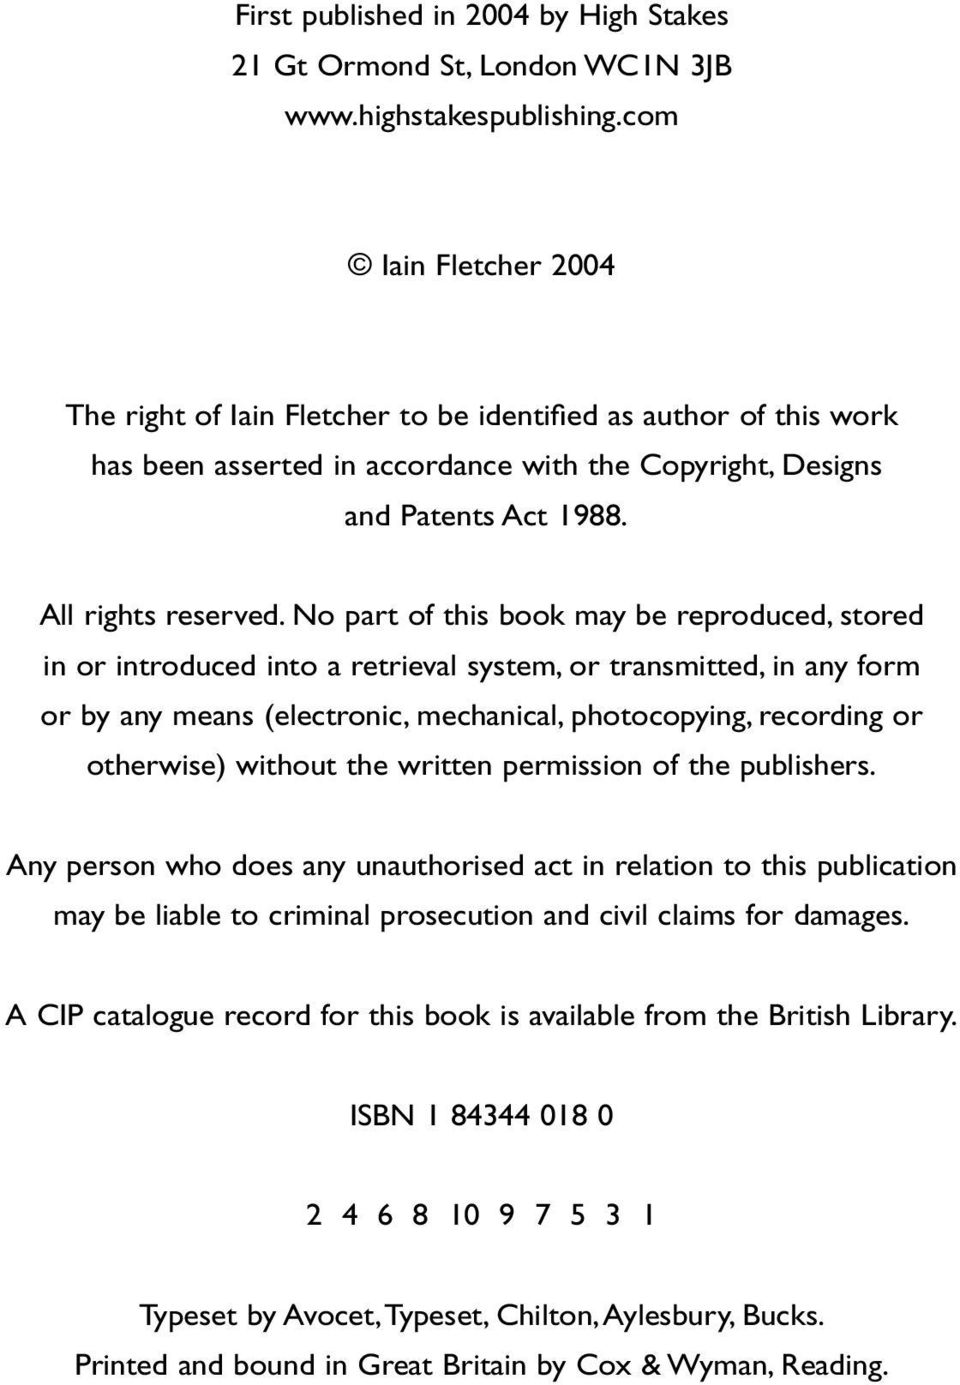 No part of this book may be reproduced, stored in or introduced into a retrieval system, or transmitted, in any form or by any means (electronic, mechanical, photocopying, recording or otherwise)